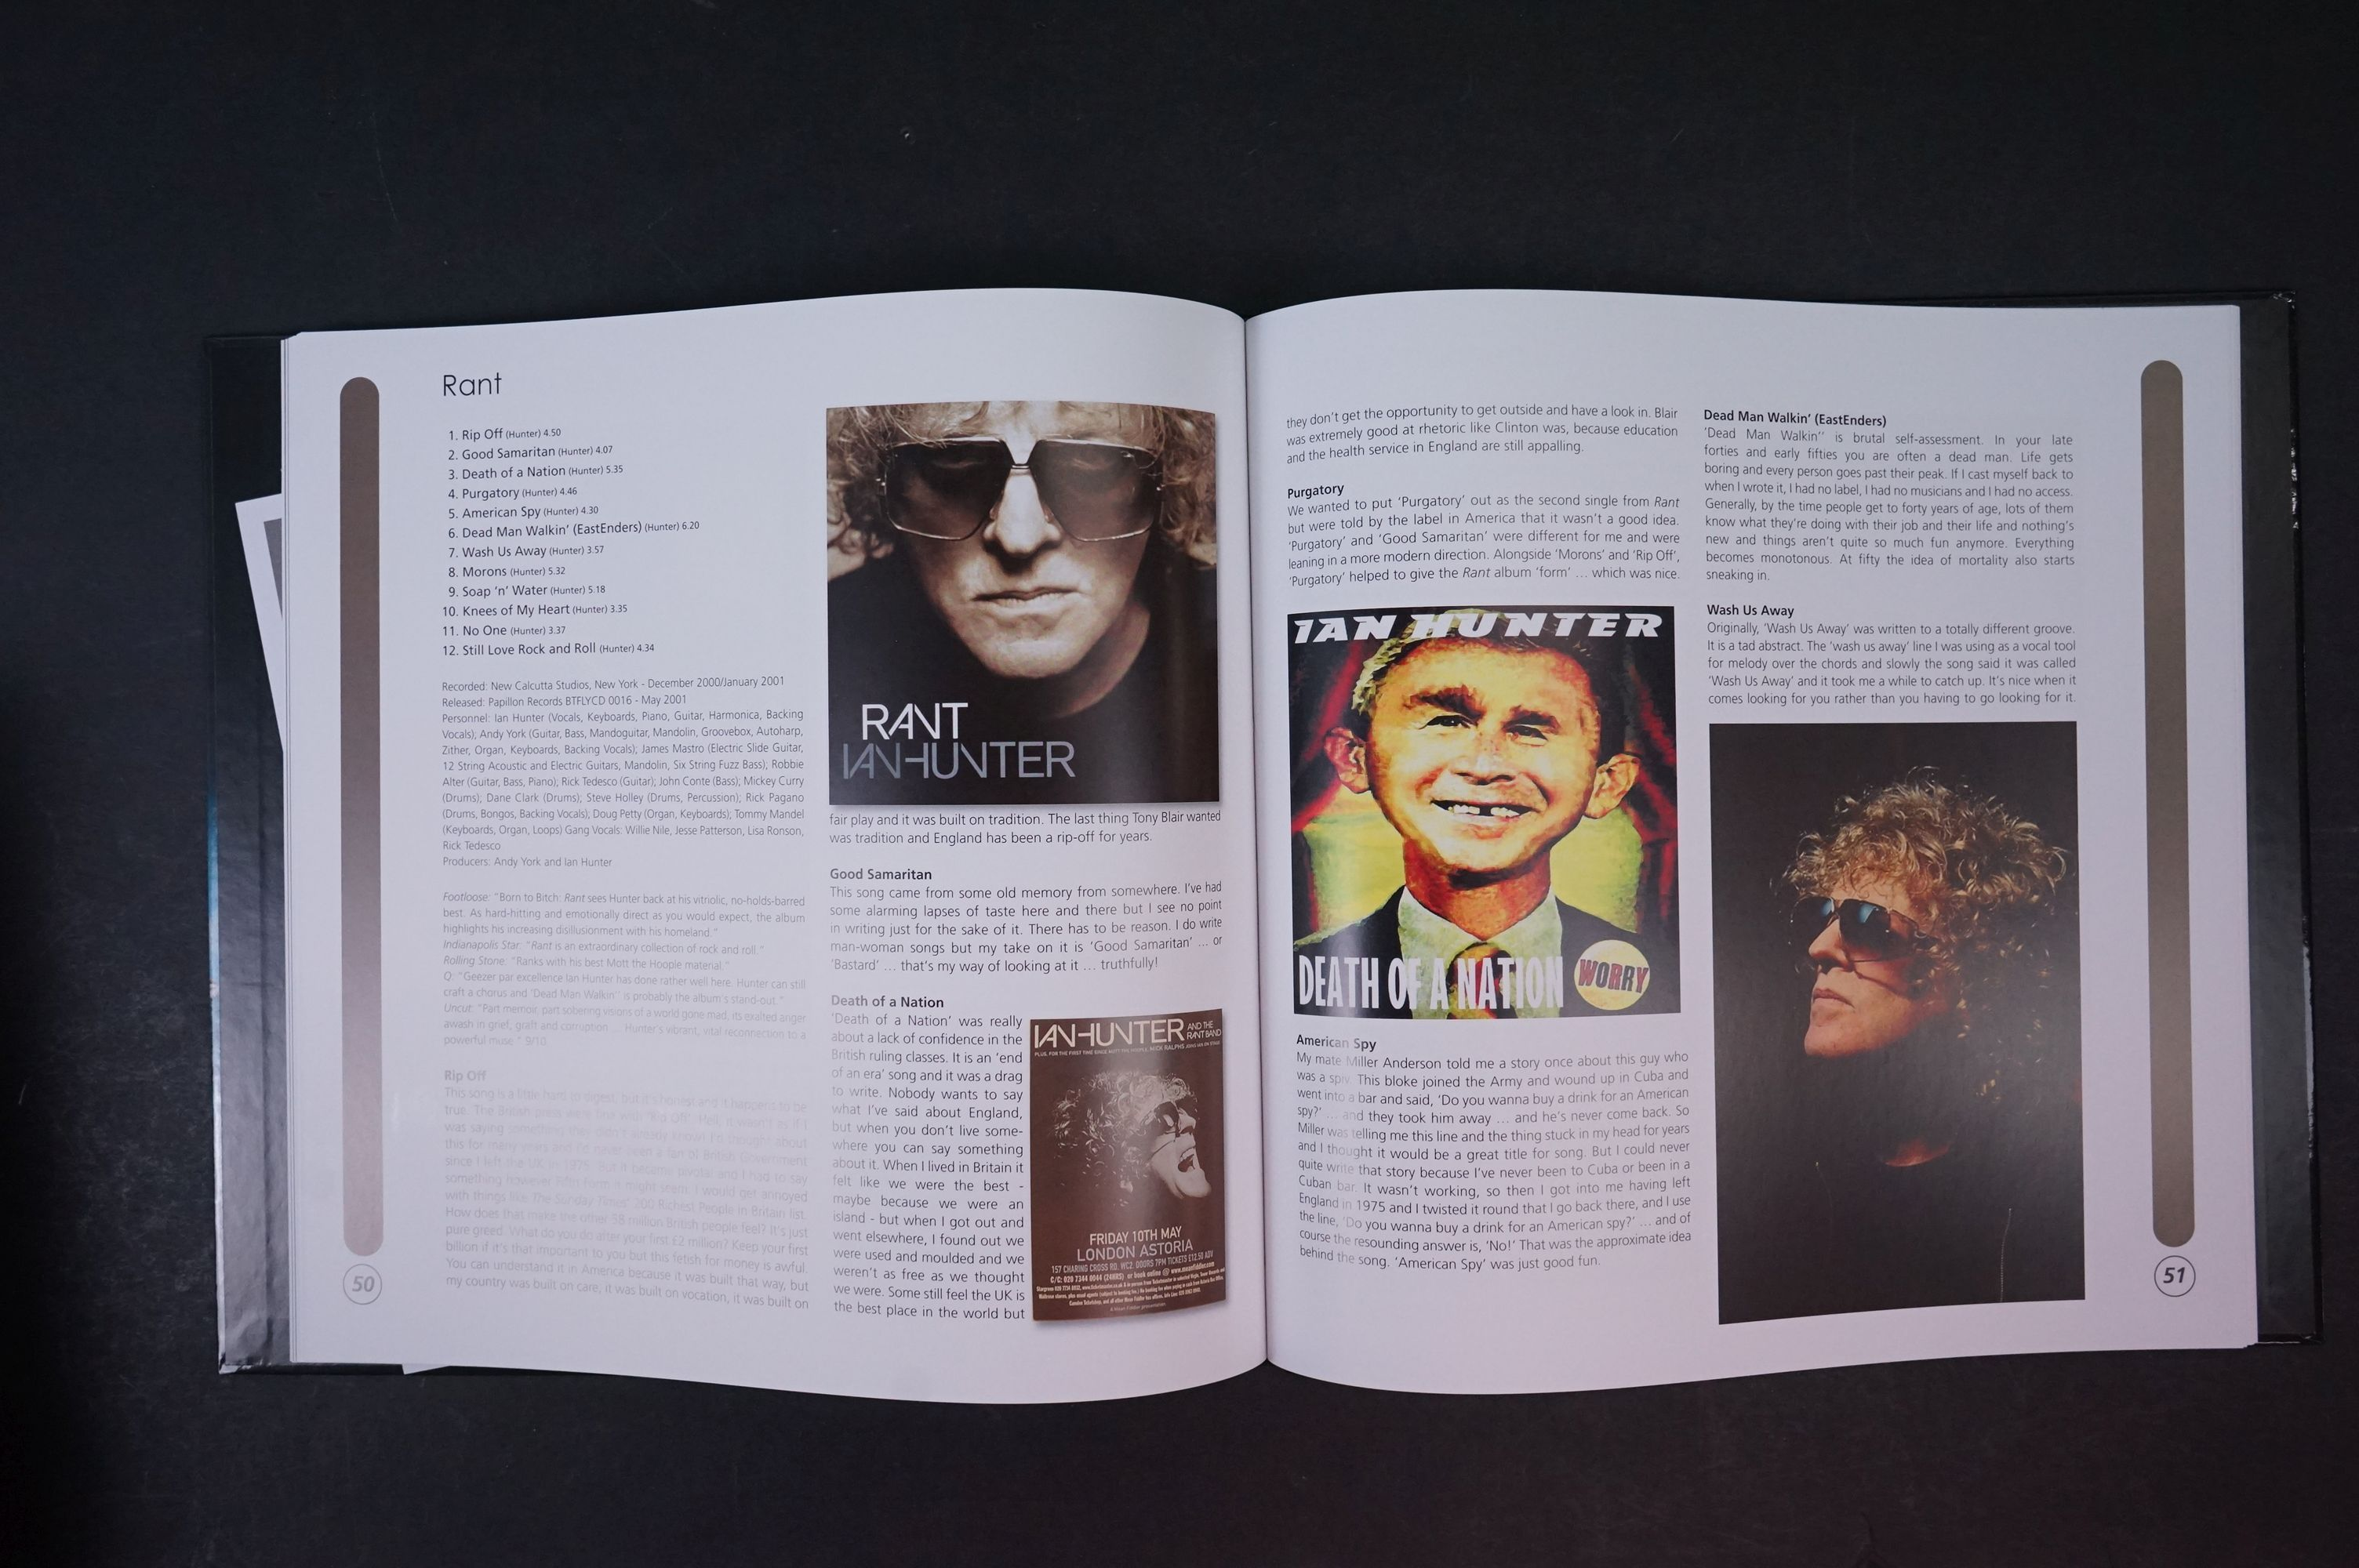 CD - Ian Hunter Stranded In Reality 30 Disc Box Set (2016) Proper Records, vg - Image 4 of 9